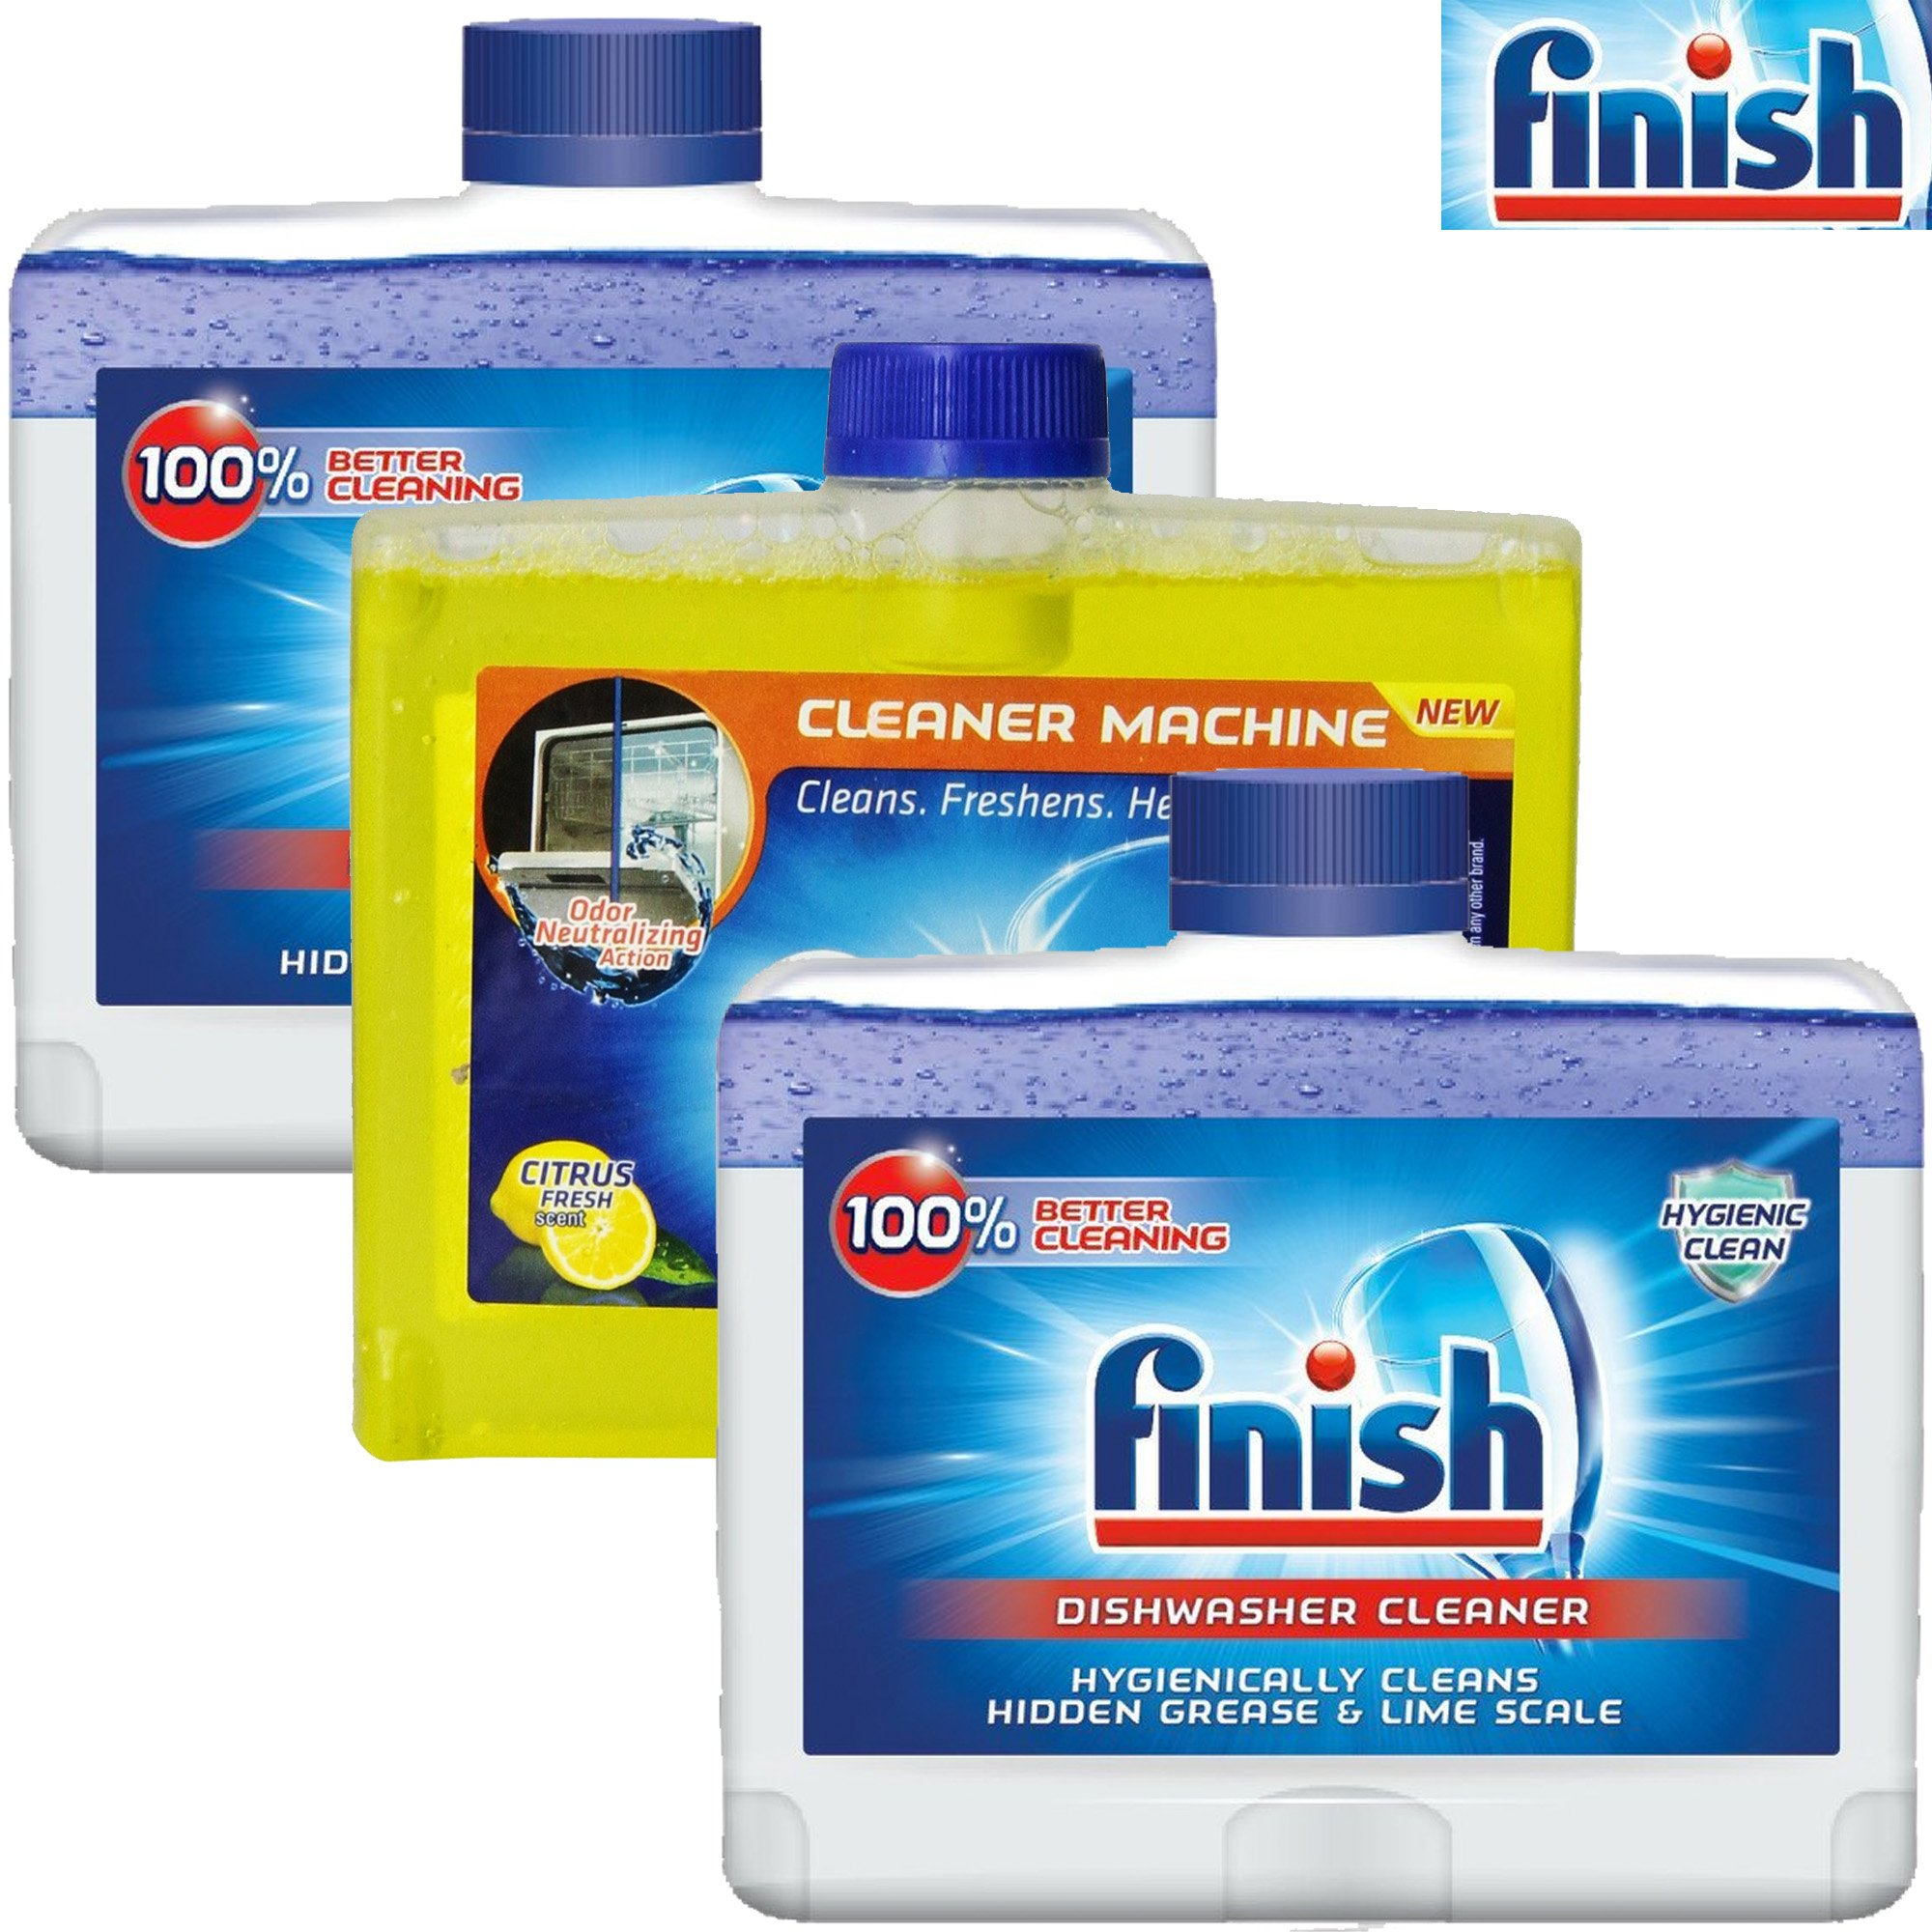 Finish Combo Pack Dishwasher Machine Cleaner - 3 Count x 8.45 oz Each (2 Original + 1 Citrus)